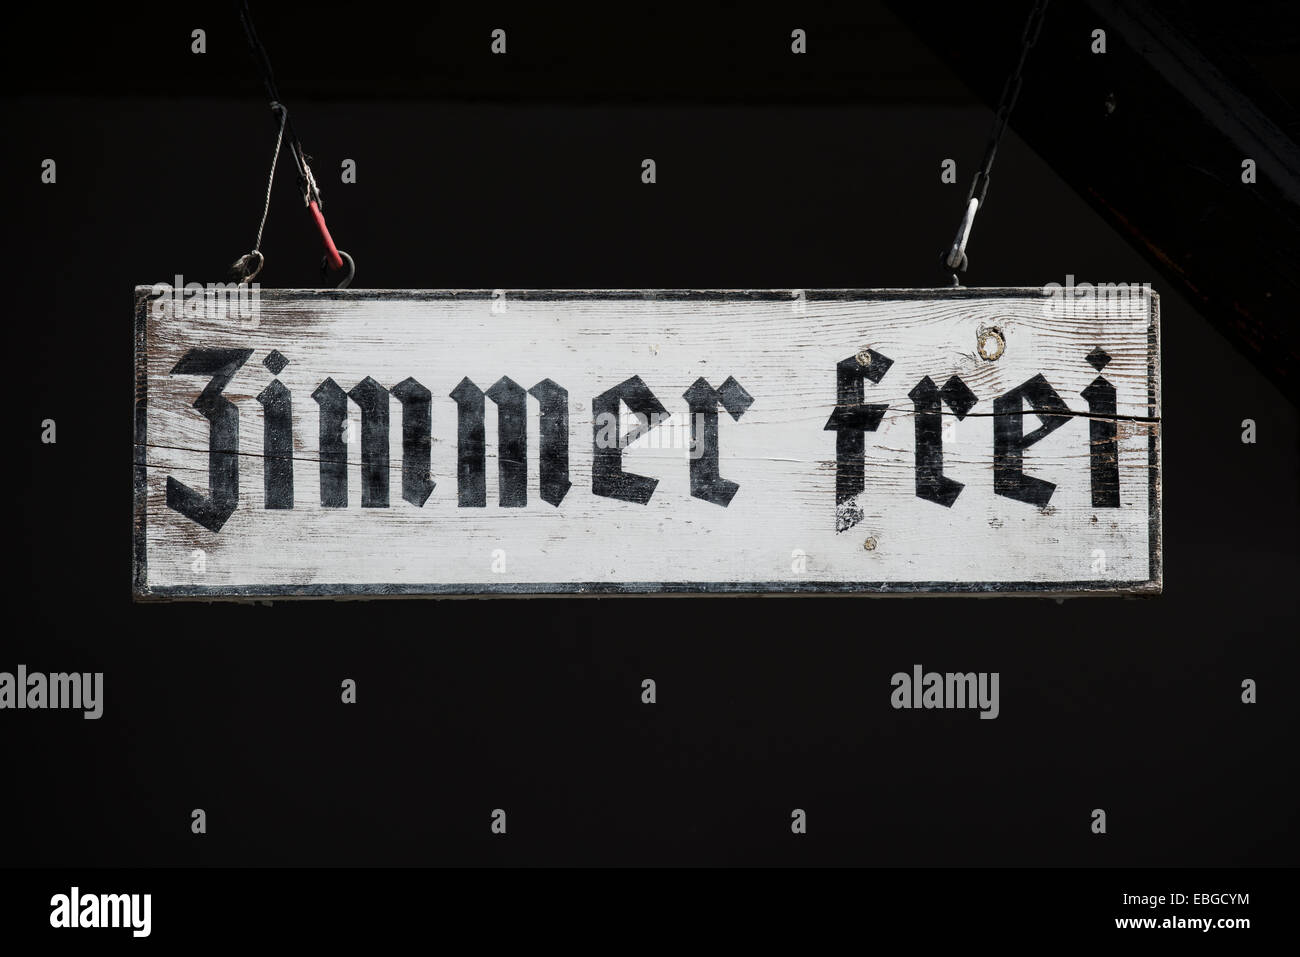 Sign 'Zimmer frei', German for 'vacancy' - Stock Image